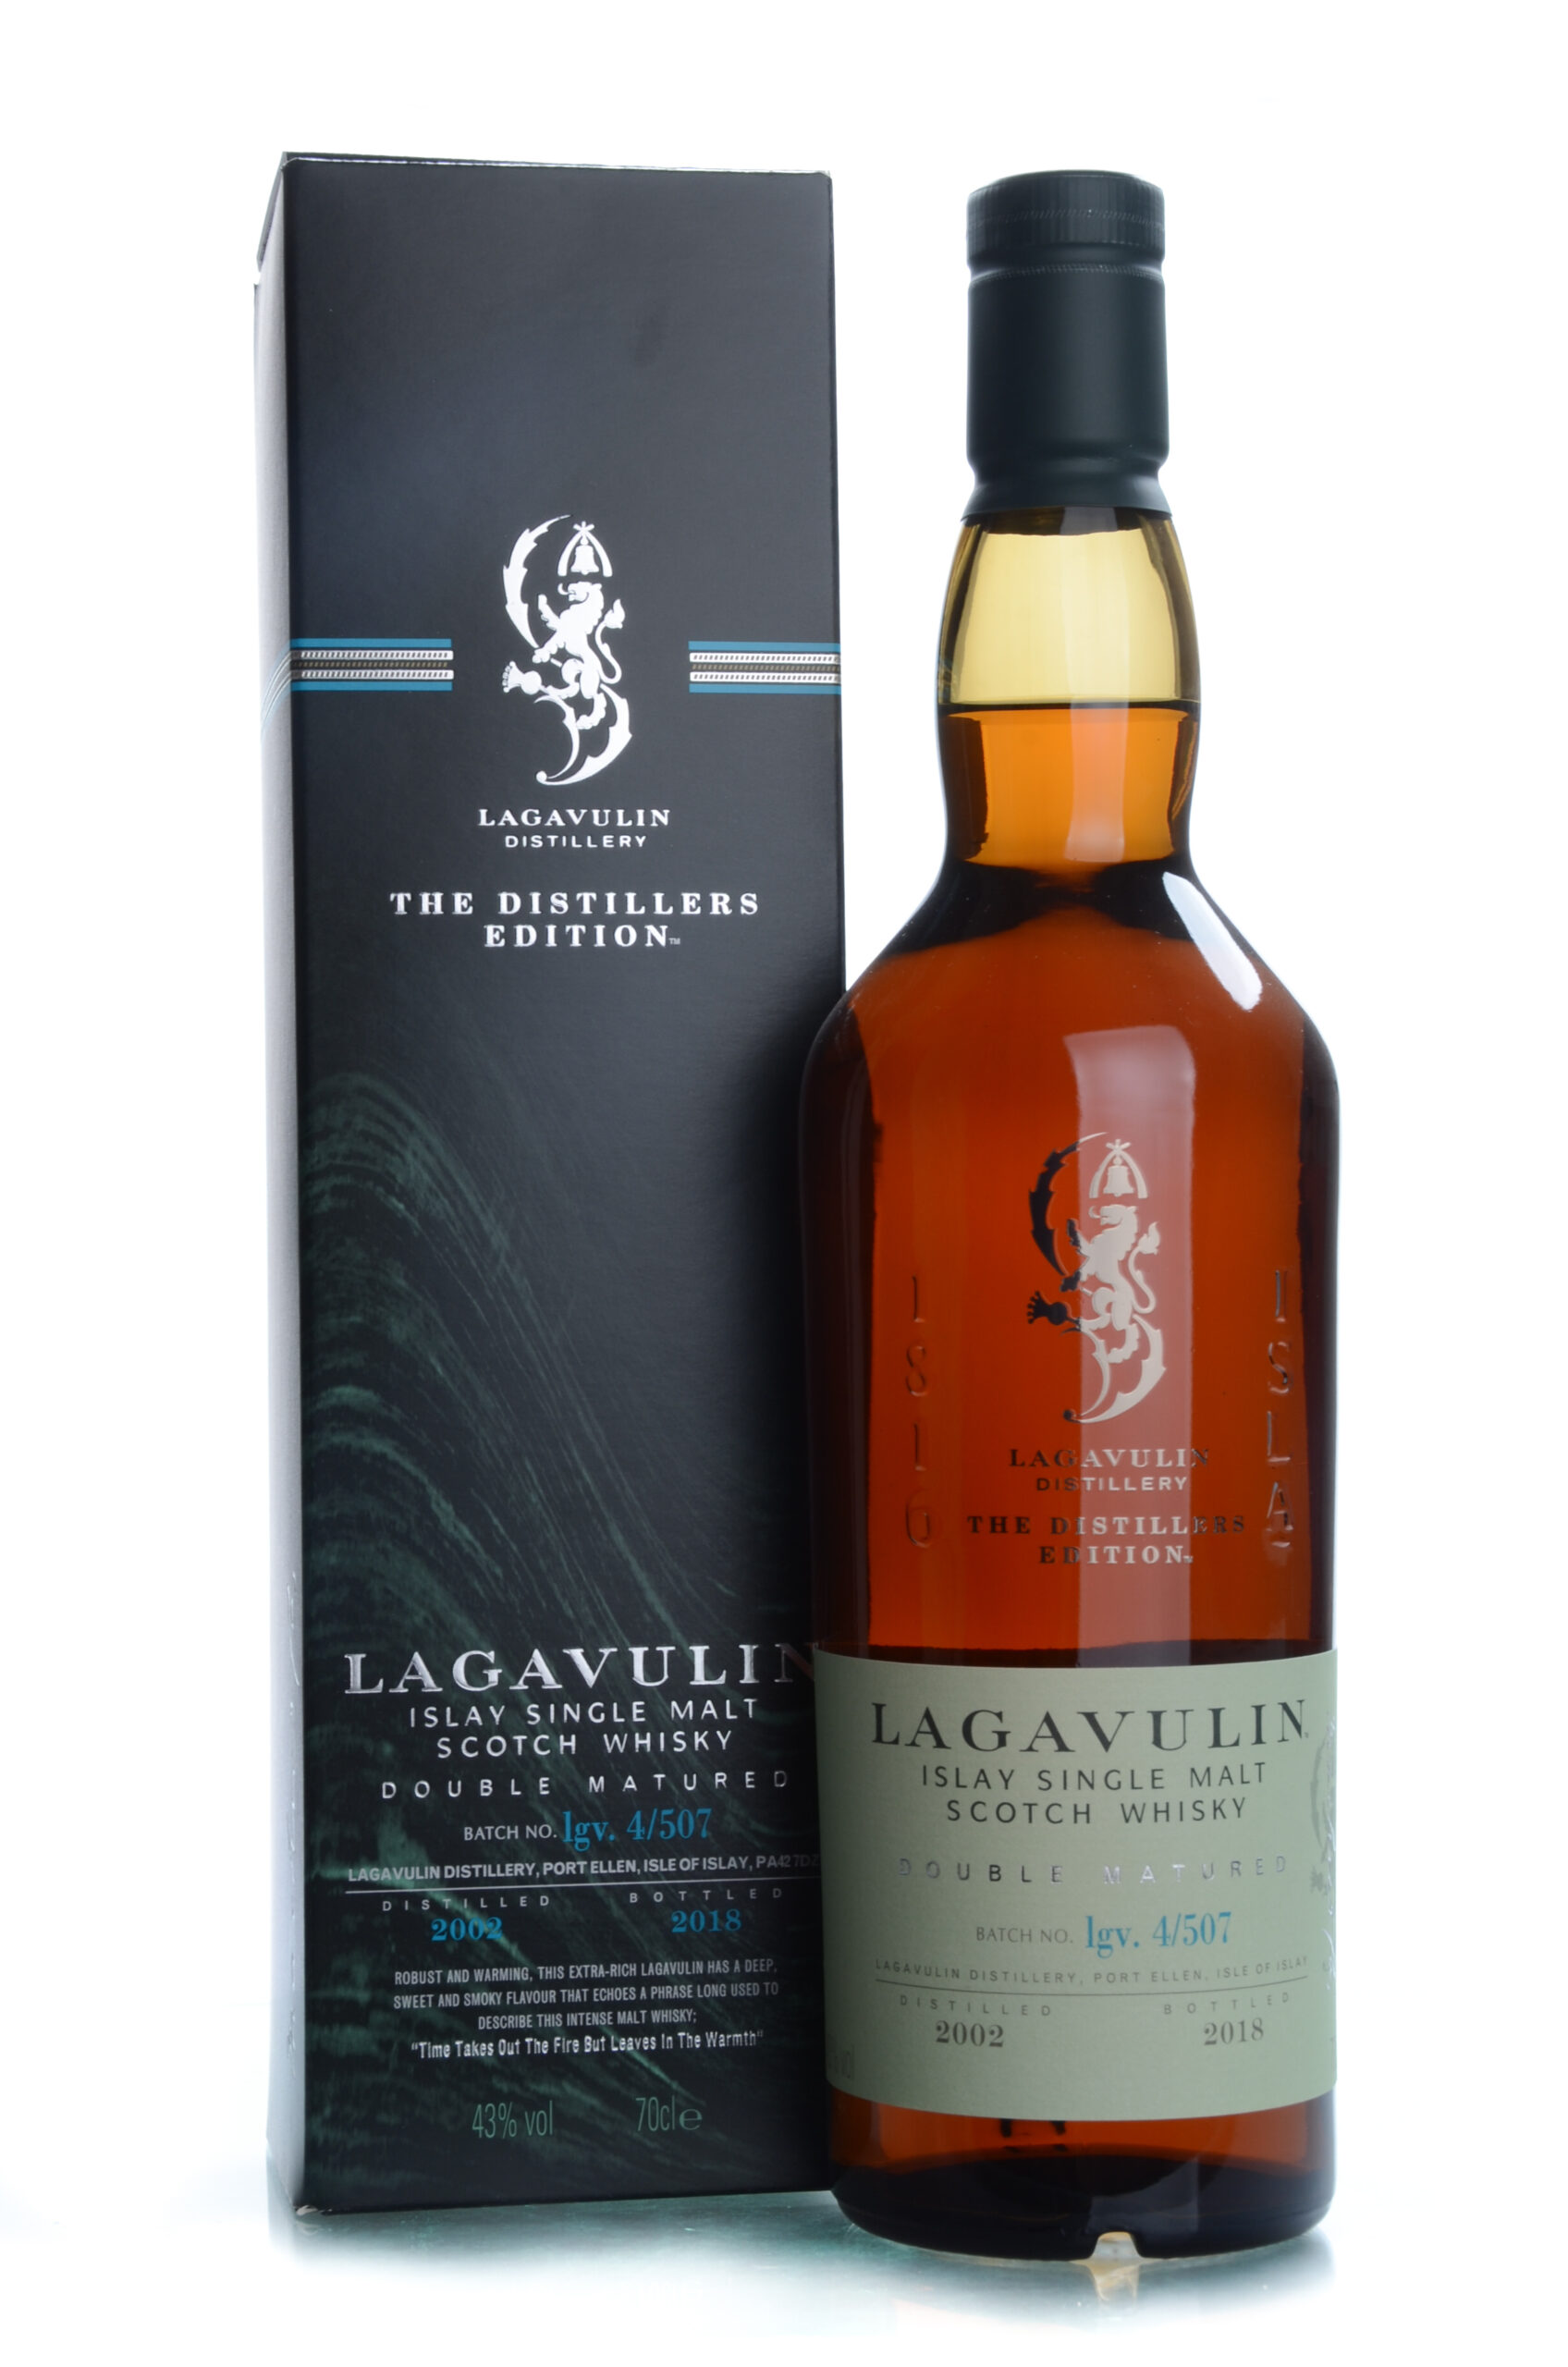 Lagavulin the distillers edition 4 507